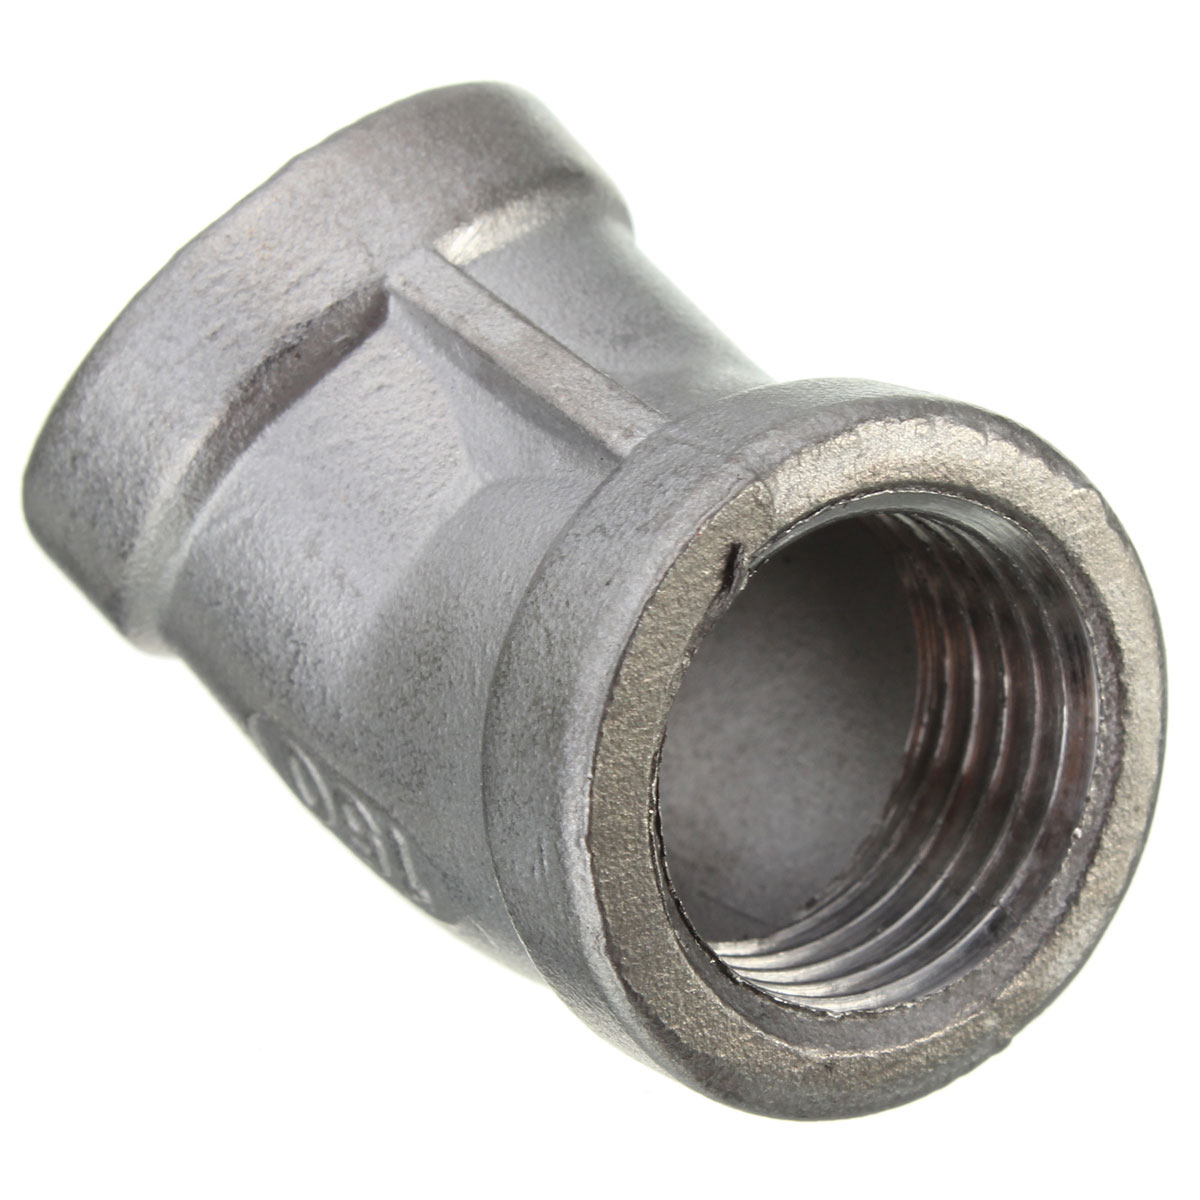 Female bsp angle stainless steel street elbow